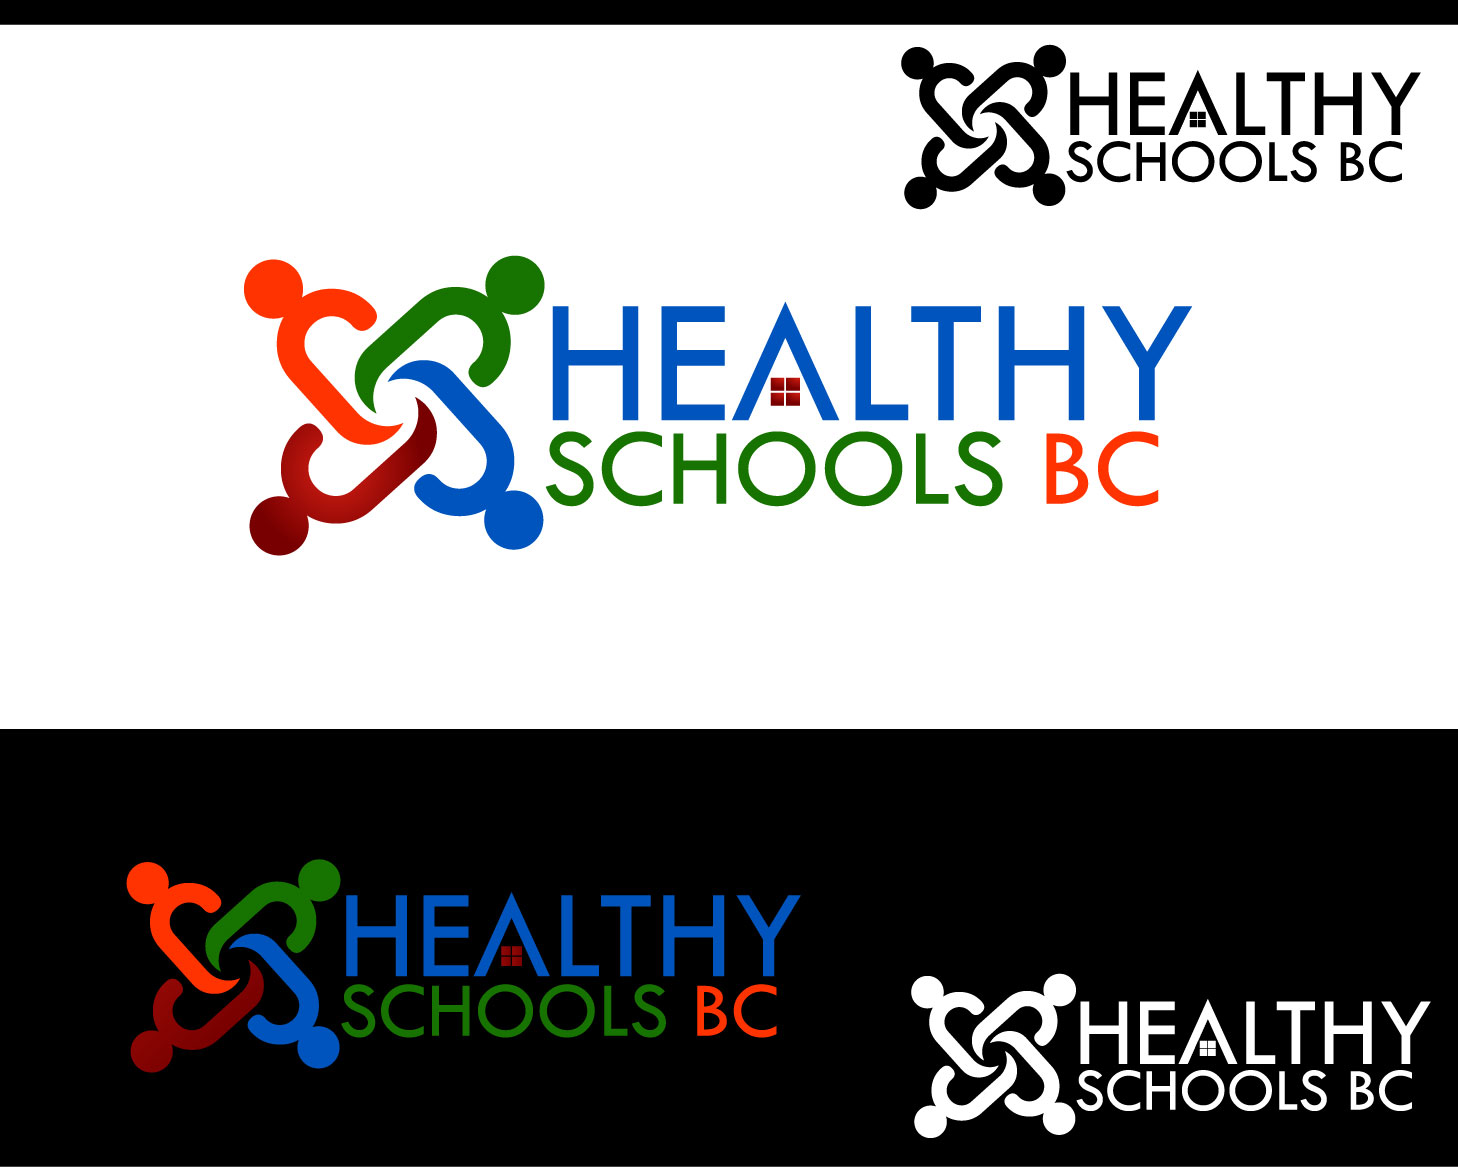 Logo Design by Private User - Entry No. 164 in the Logo Design Contest SImple, Creative and Clean Logo Design for Healthy Schools British Columbia, Canada.